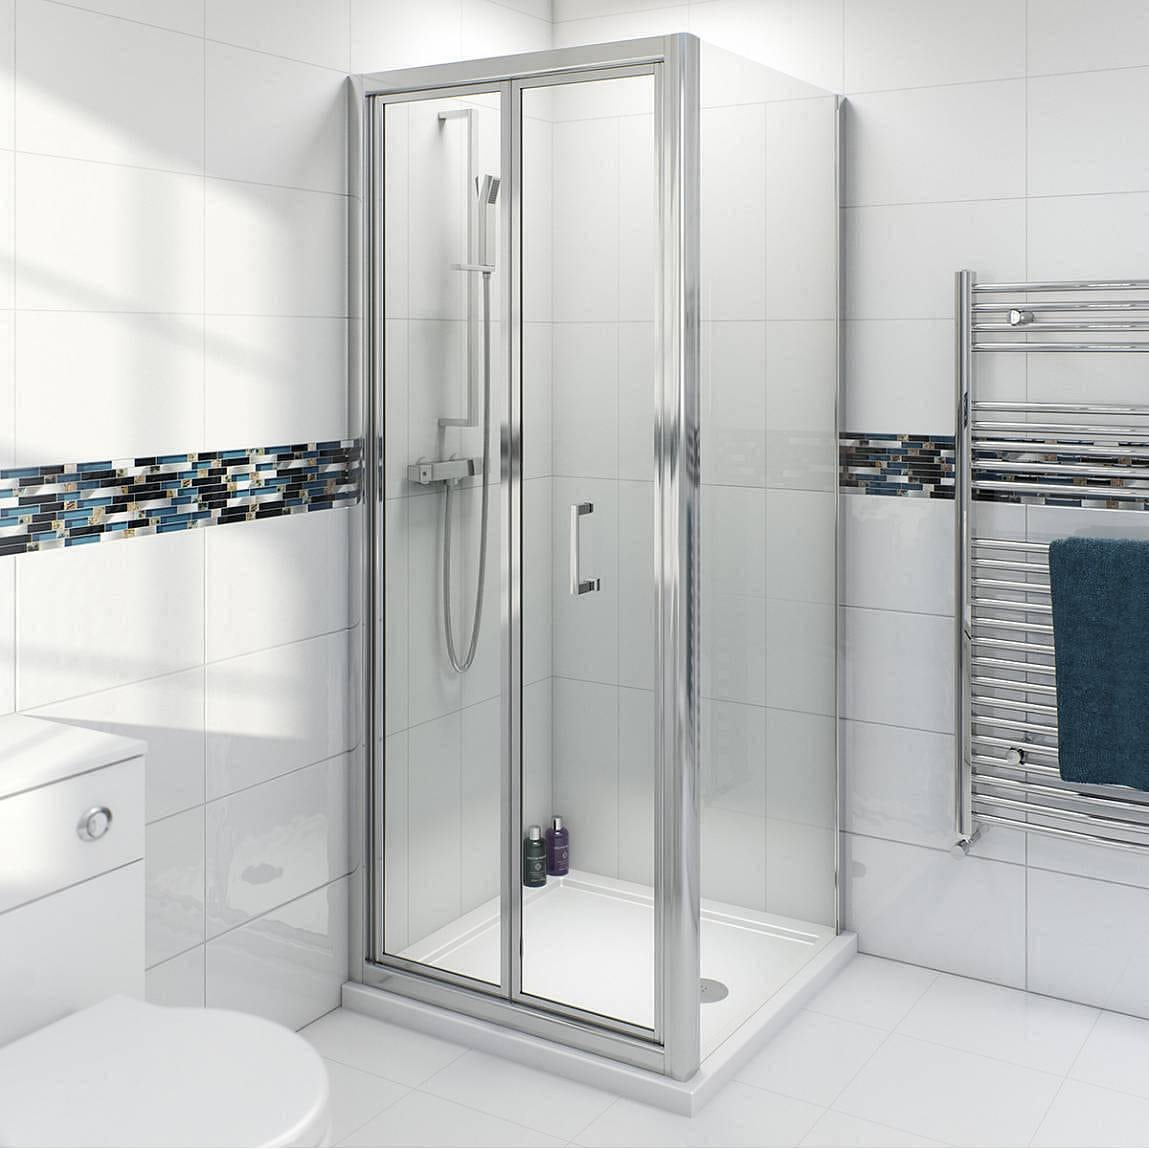 Clarity 4mm bifold door rectangular shower enclosure